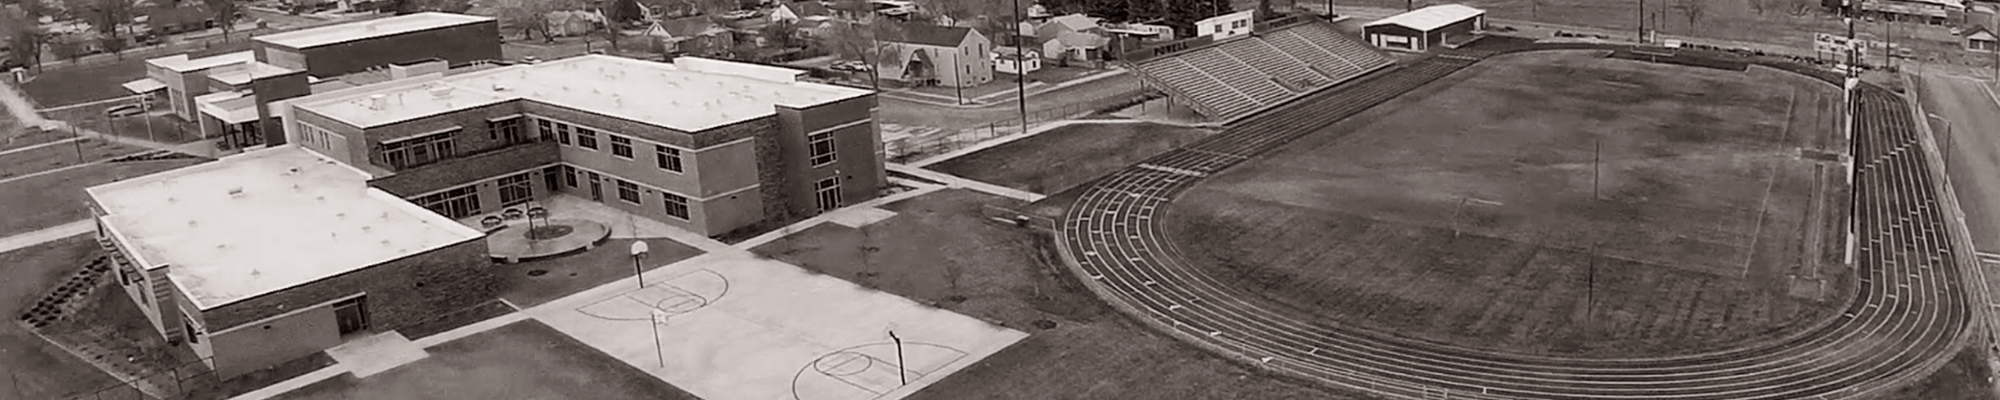 Aerial view of Powell Middle School campus